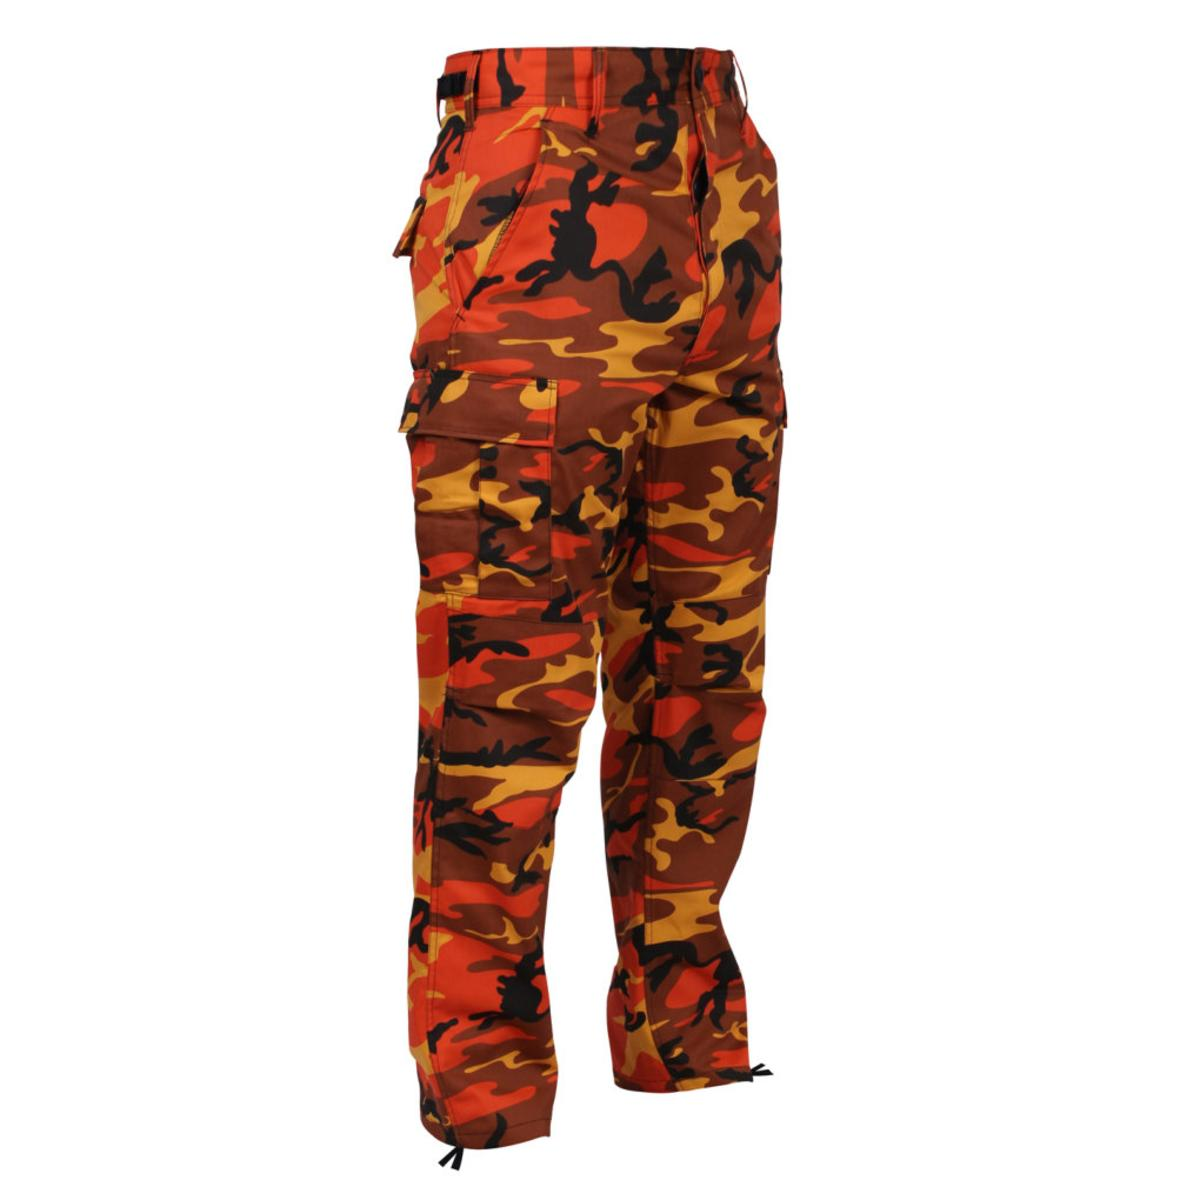 Ultra Force Savage Orange Camouflage B.D.U. Pants